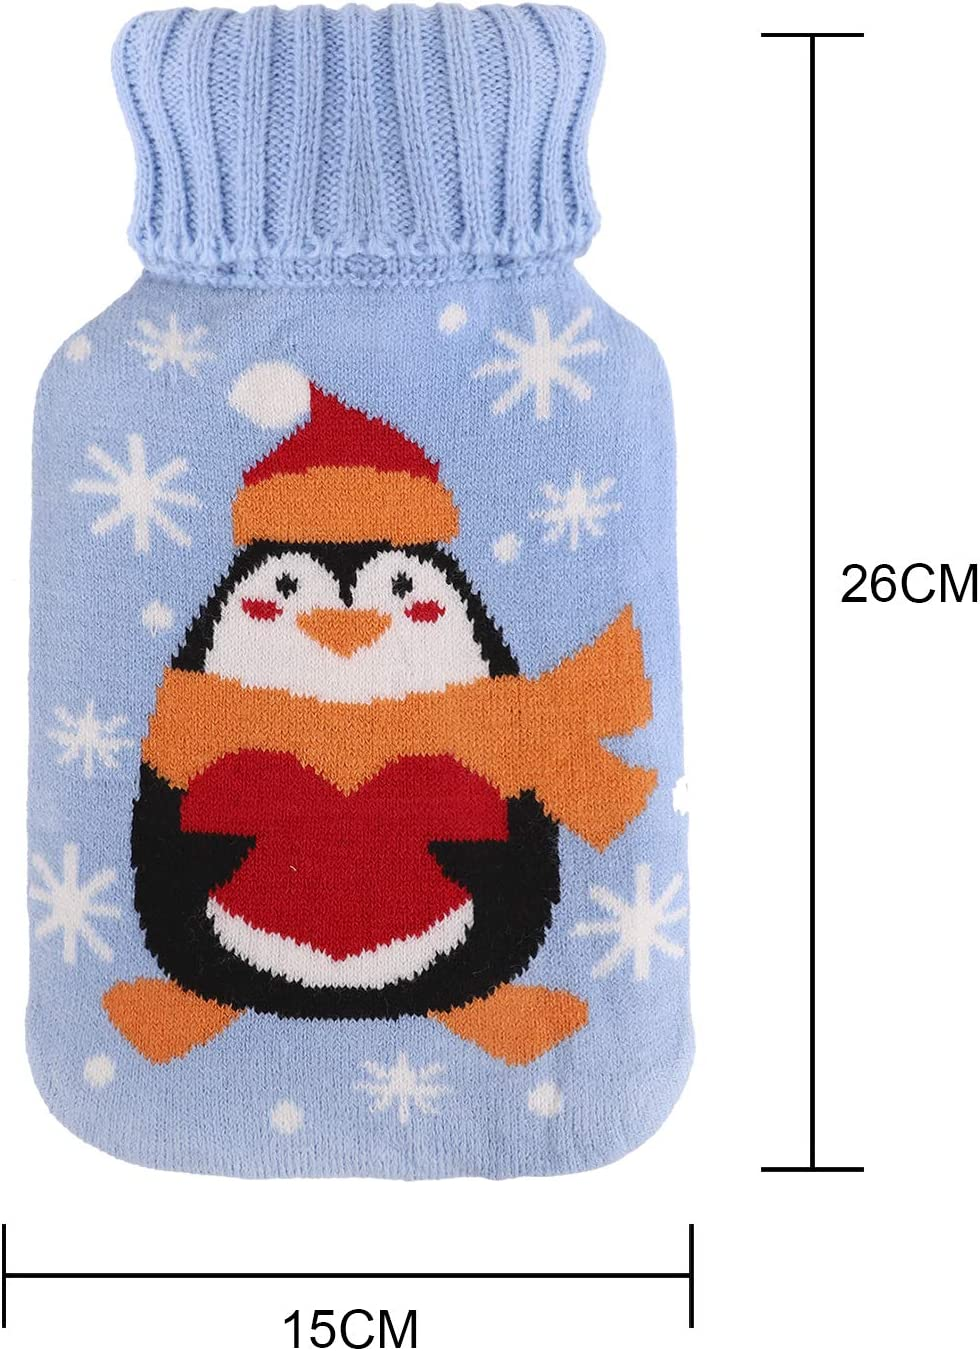 Moonlove Hot Water Bag 1000ml Rubber Hot Water Bottle with Lovely Cartoon Knitted Cover Removable Warm Your Hands Foot Stomach-Safety Tested Bear